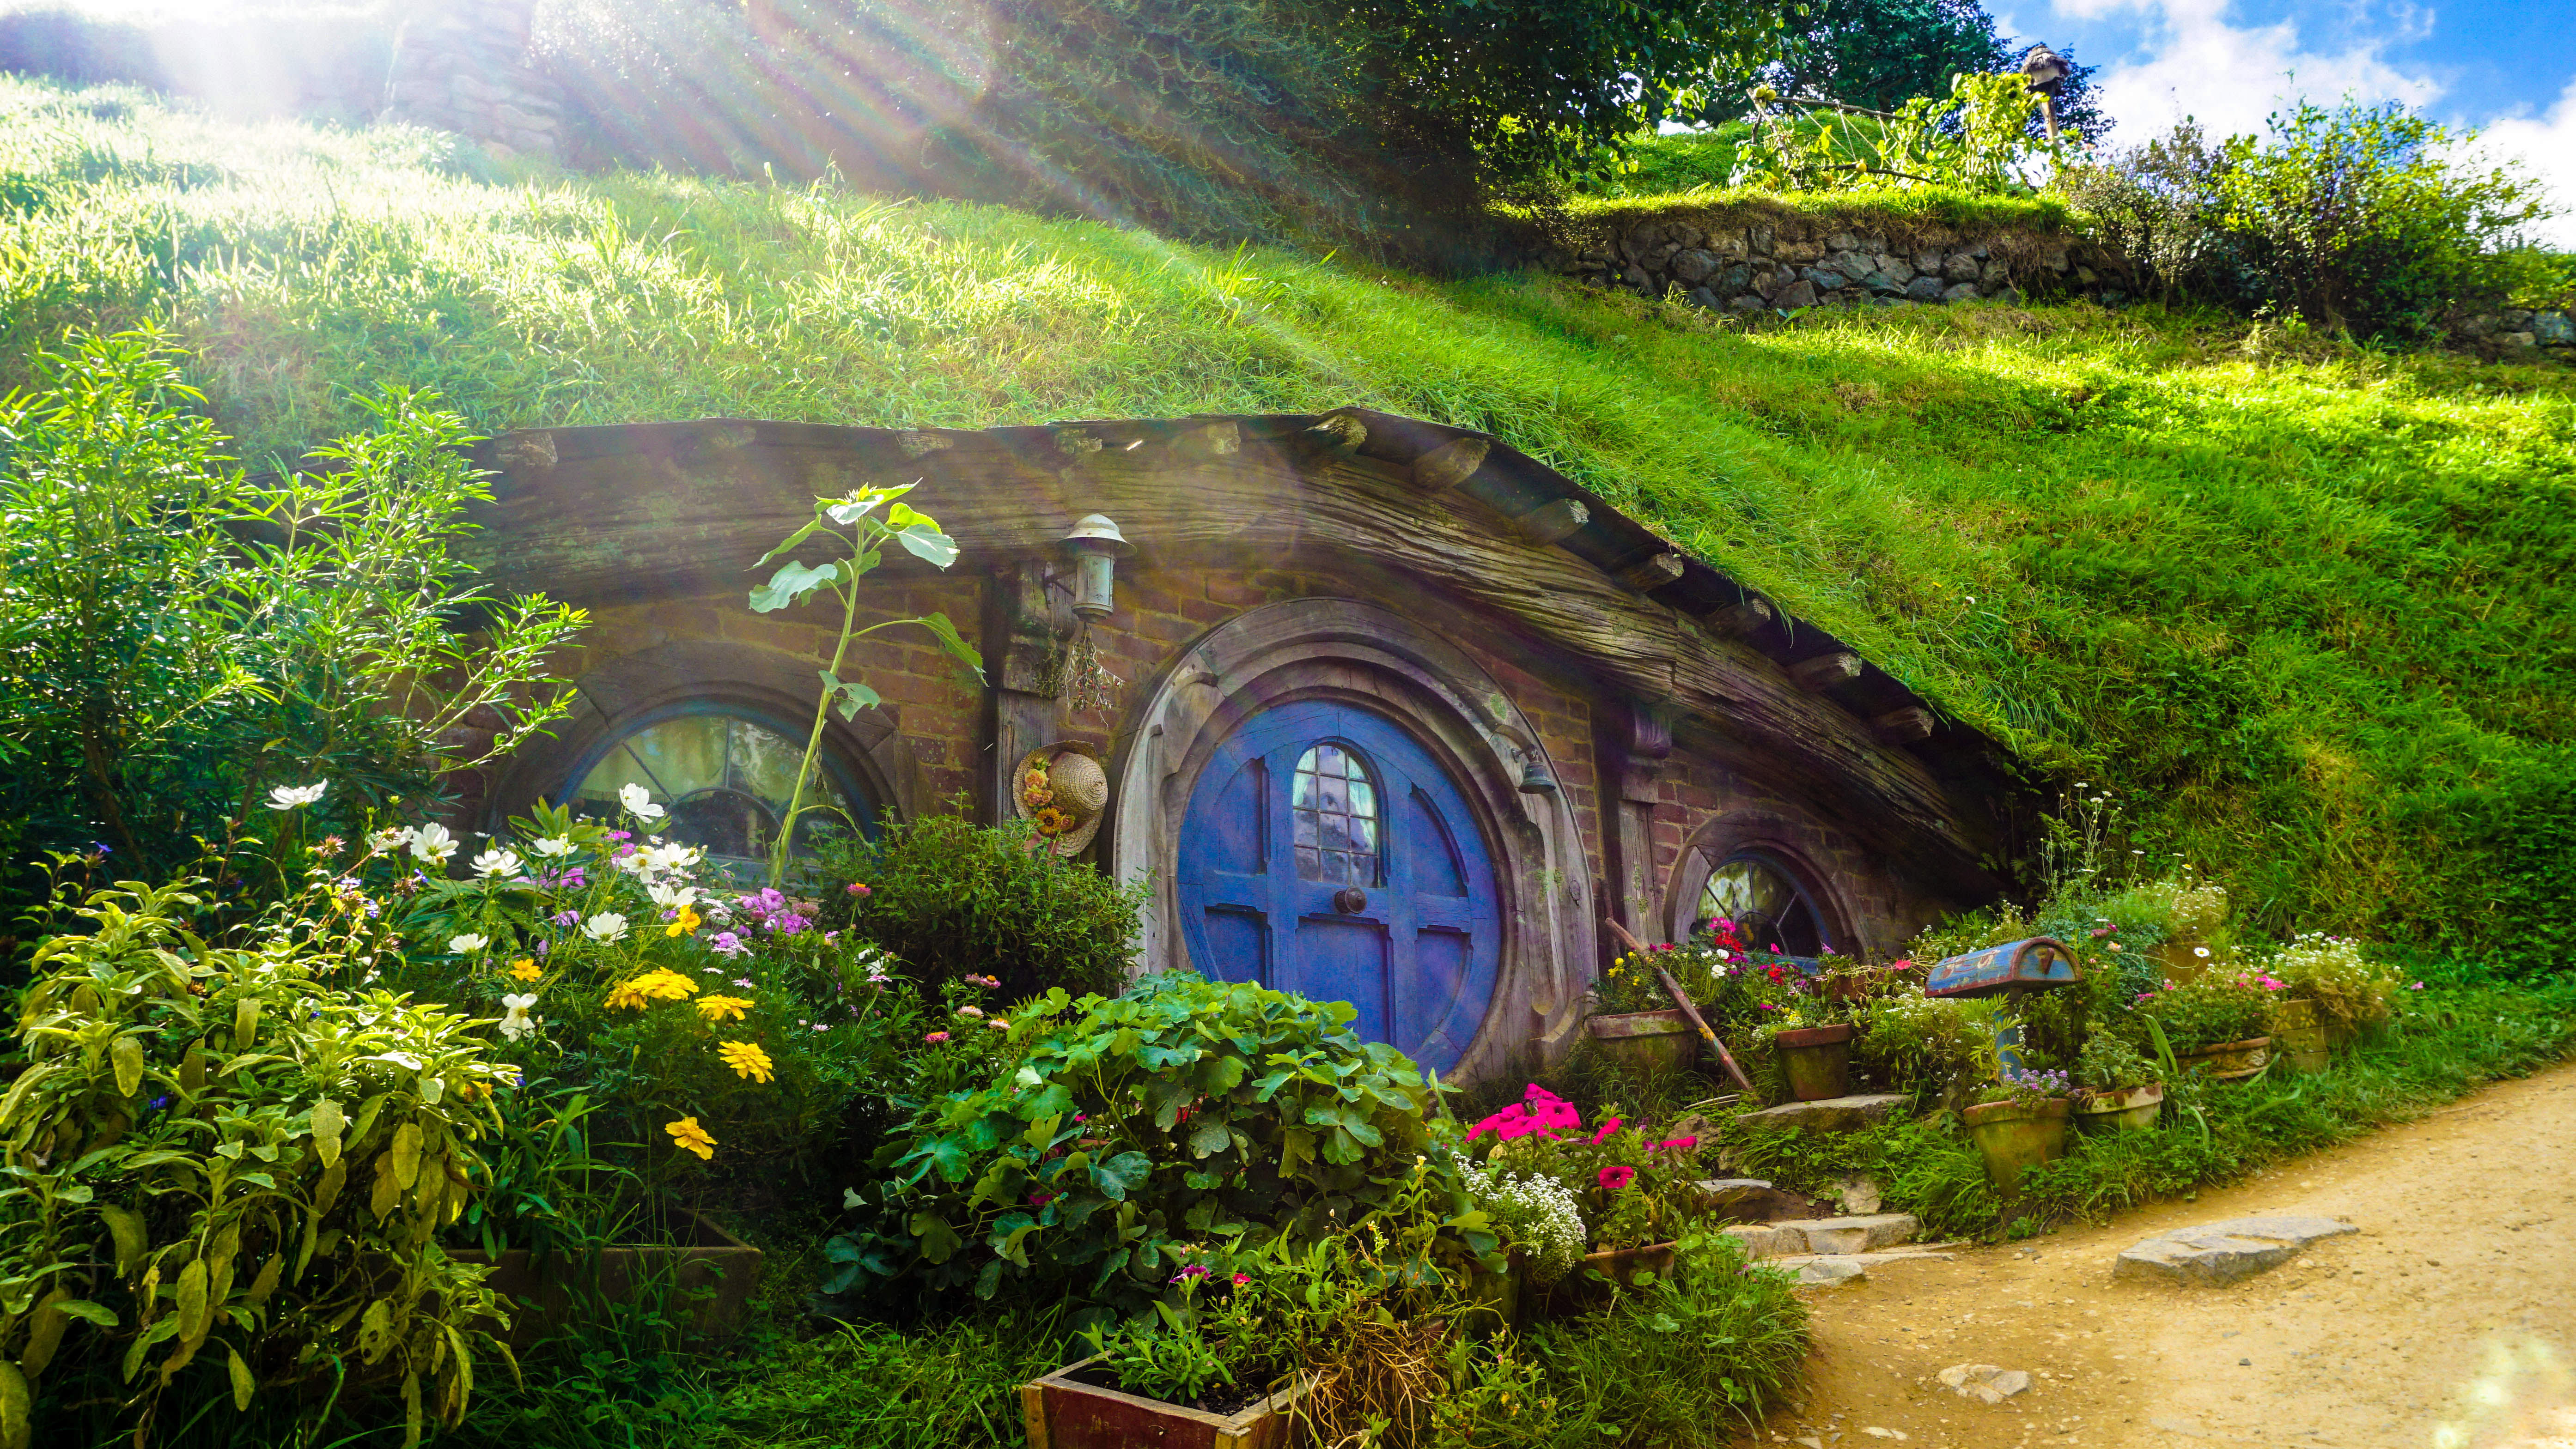 Hobbit House in New Zealand. Photo by Andres Iga.